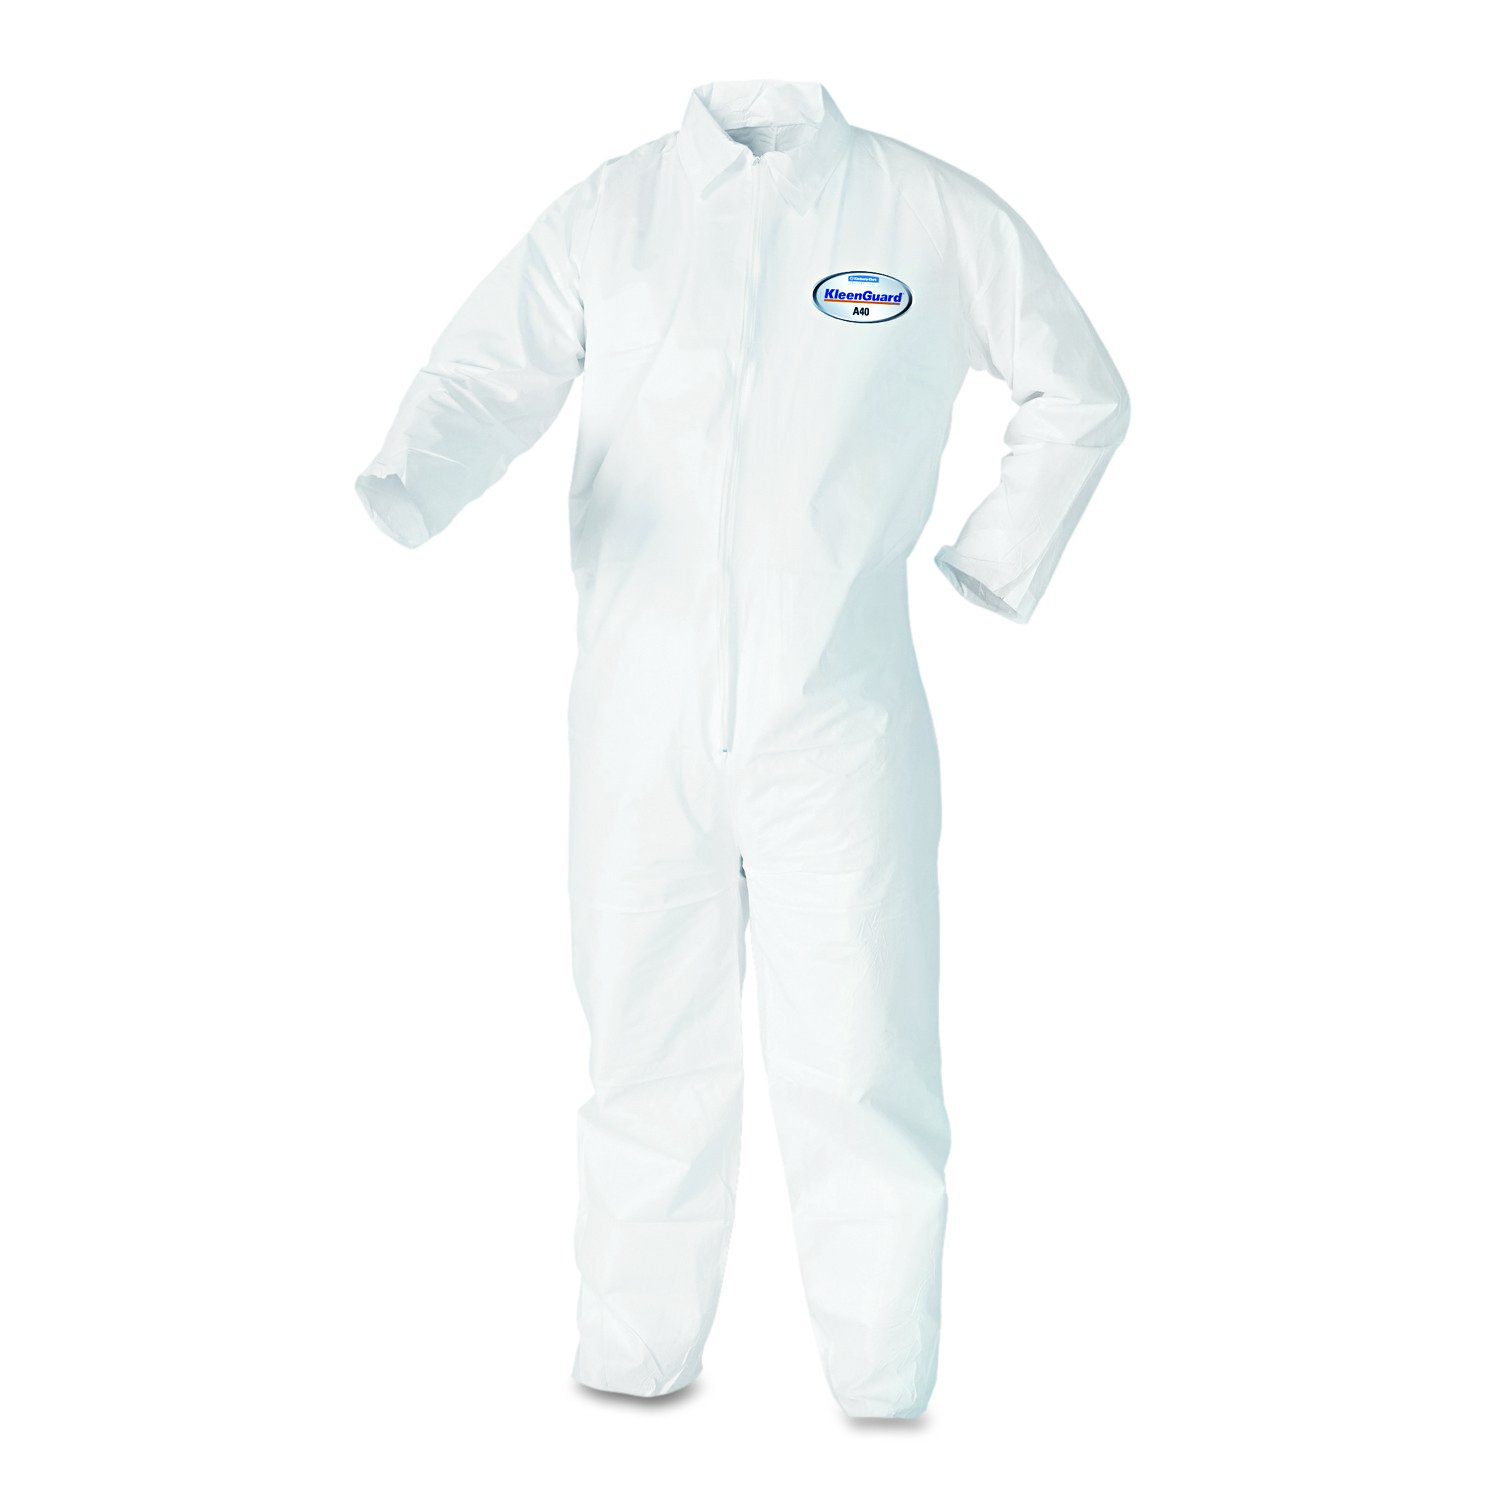 KleenGuard Coveralls A 40 Liquid and Particle Protection Apparel (44305), White, 2XL (XXL), 25 Garments / Case